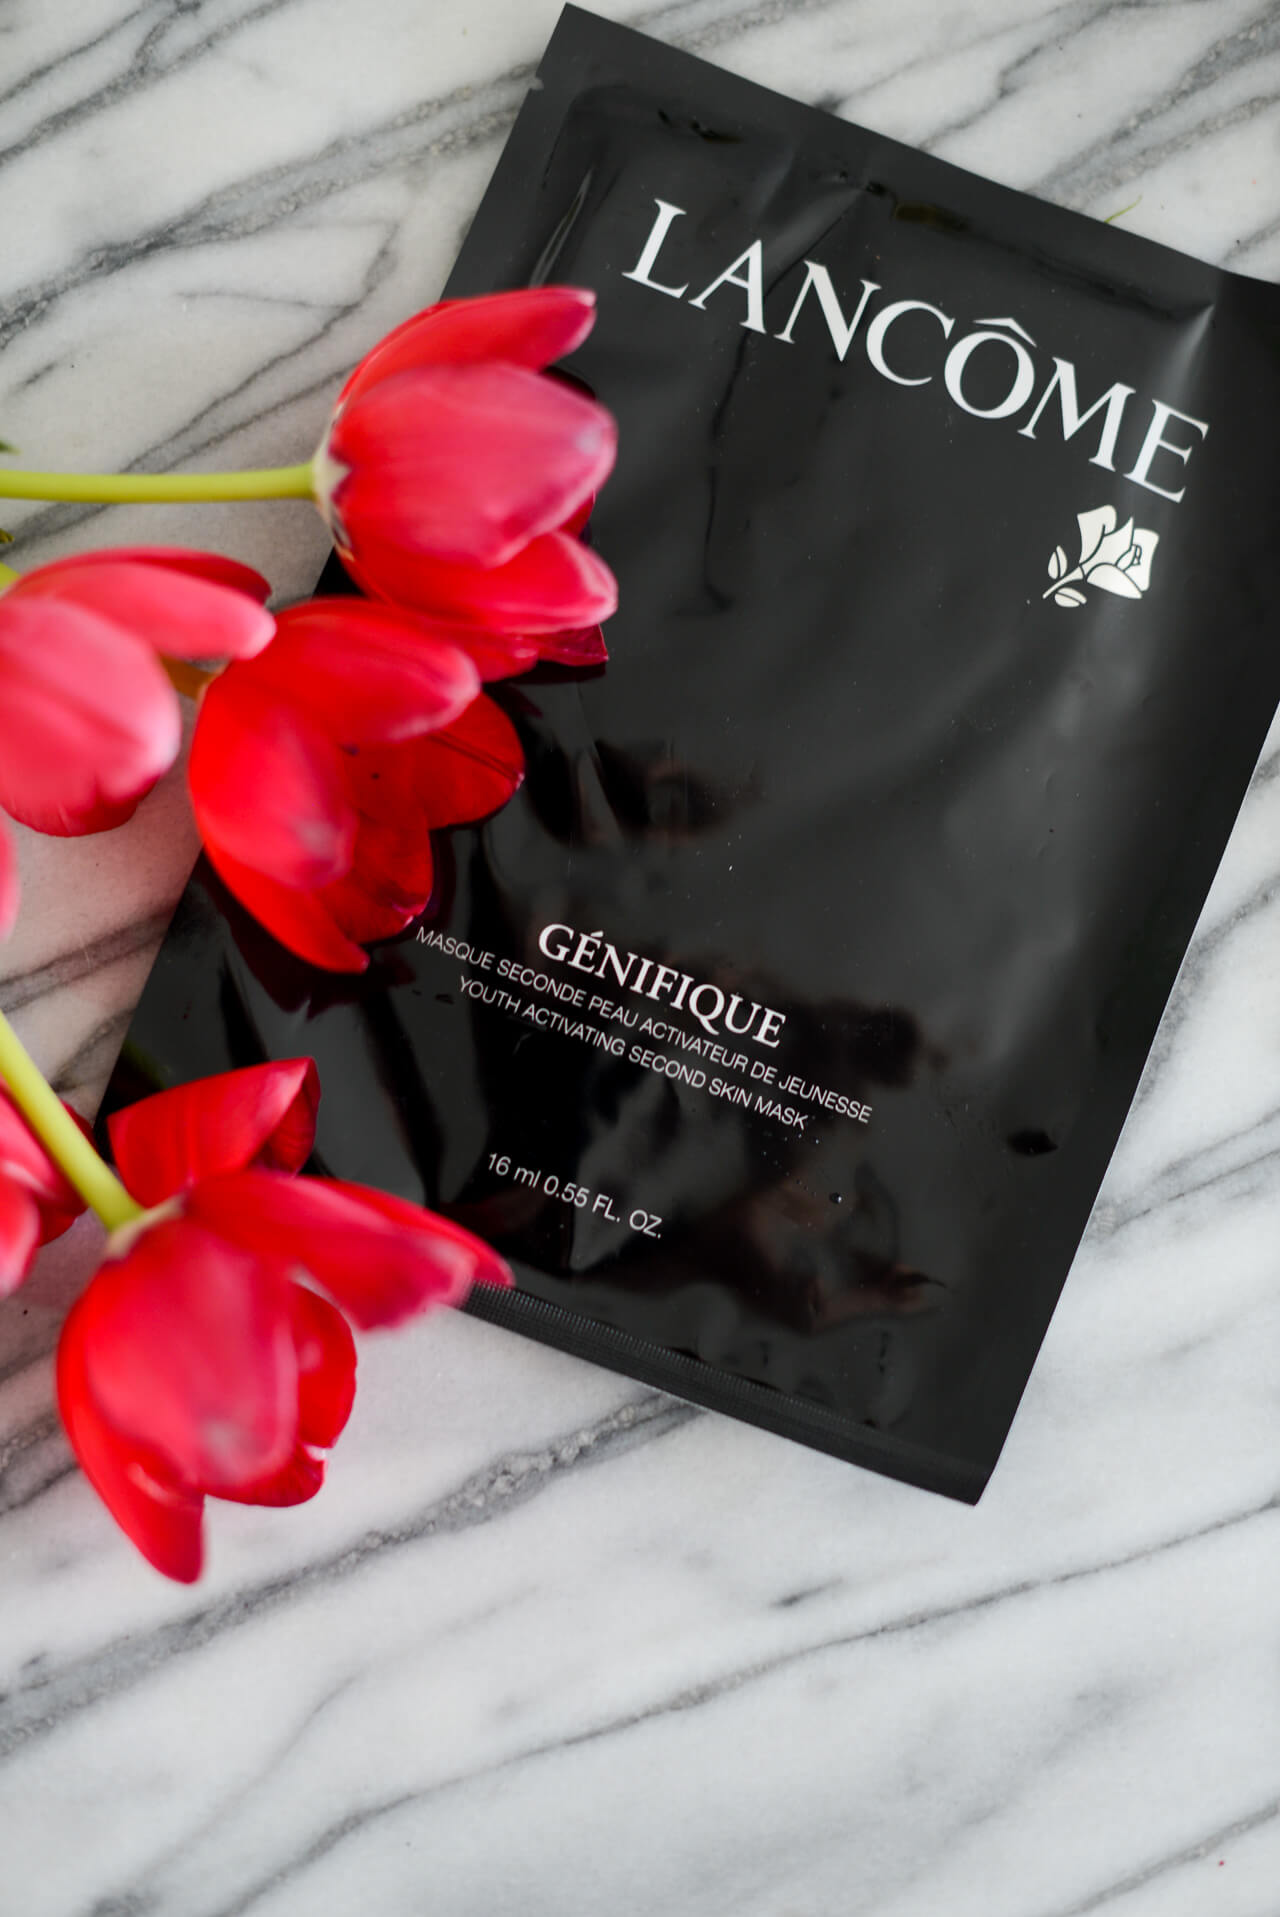 Lancome Genifique Mask Review